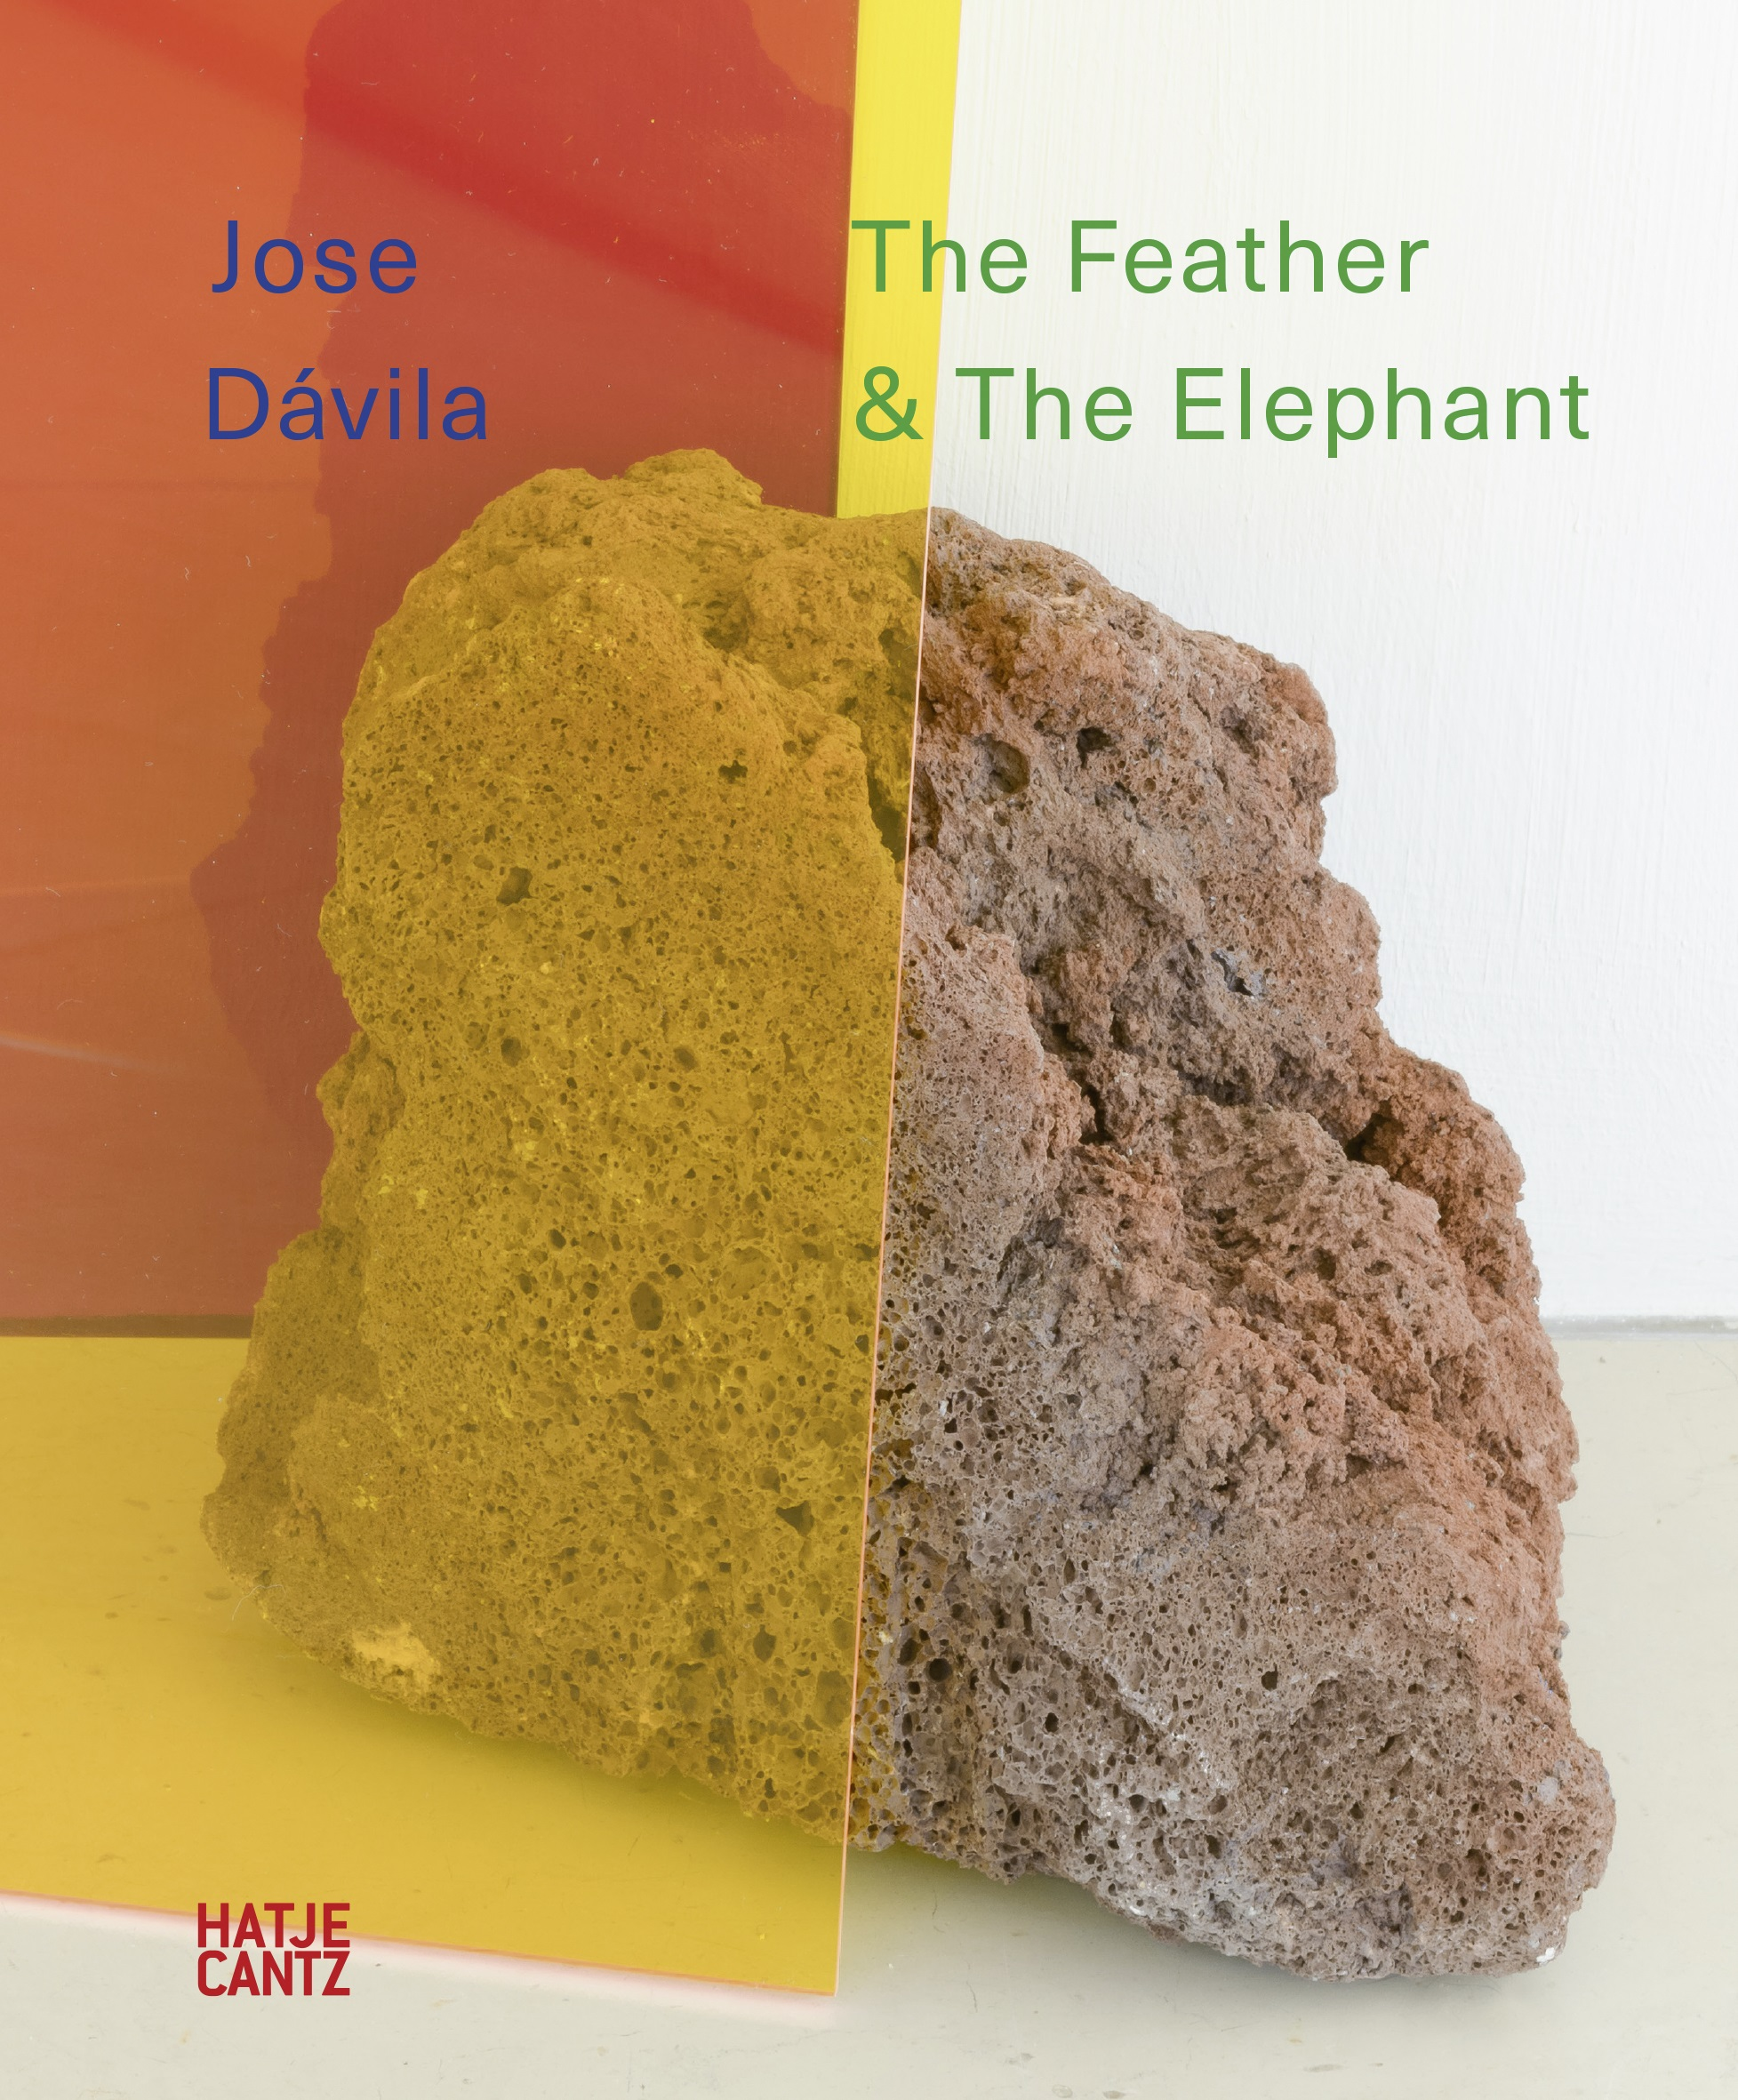 Jose Dávila The Feather & The Elephant © Hatje Cantz Verlag